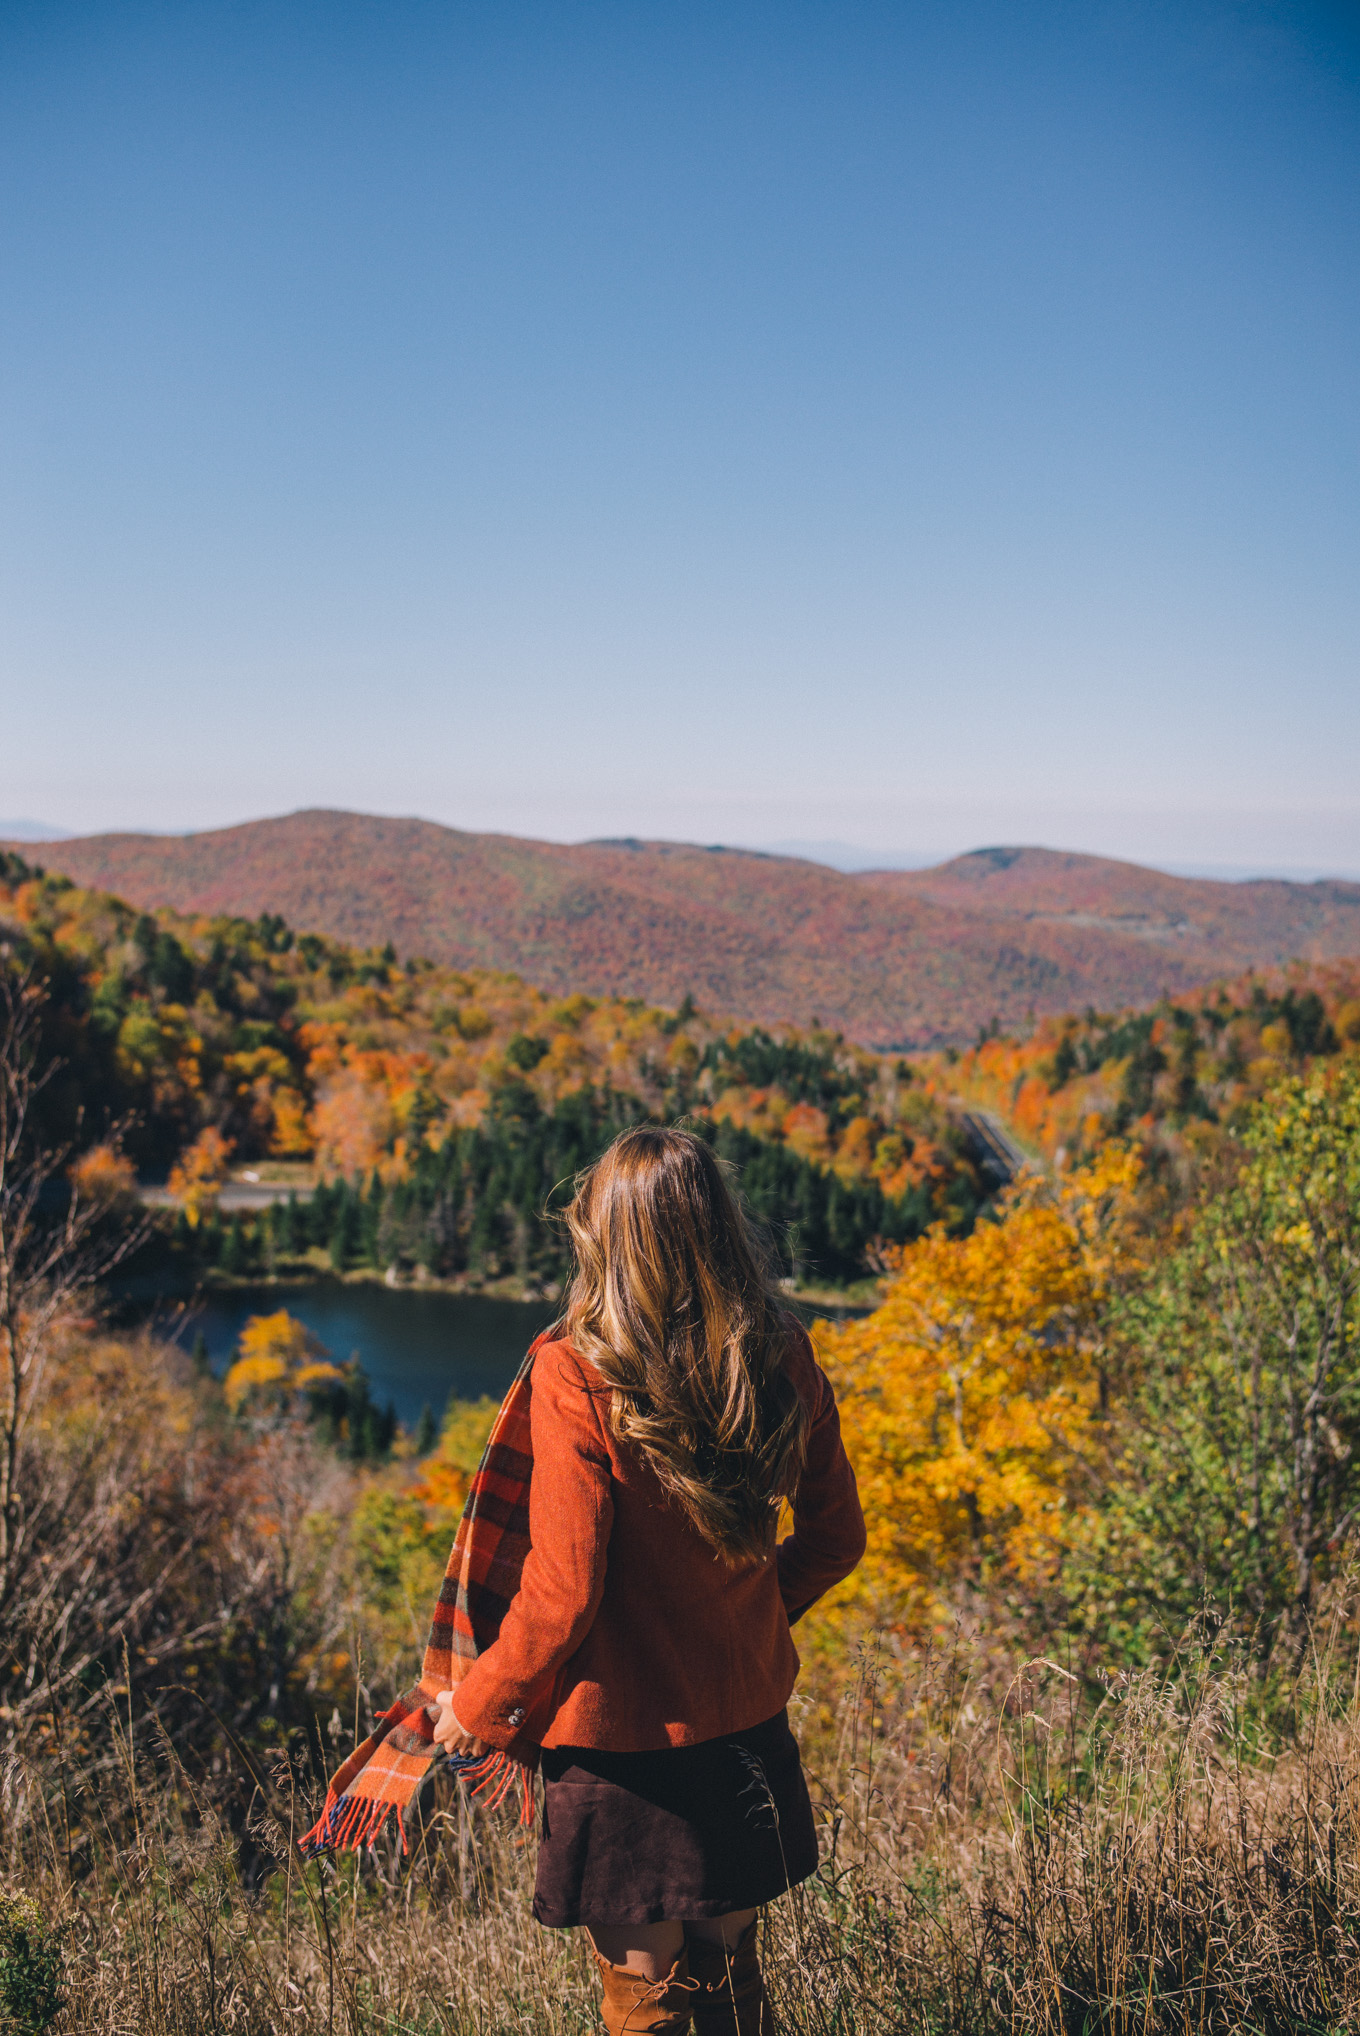 gmg-vermont-fall-colors-1000131